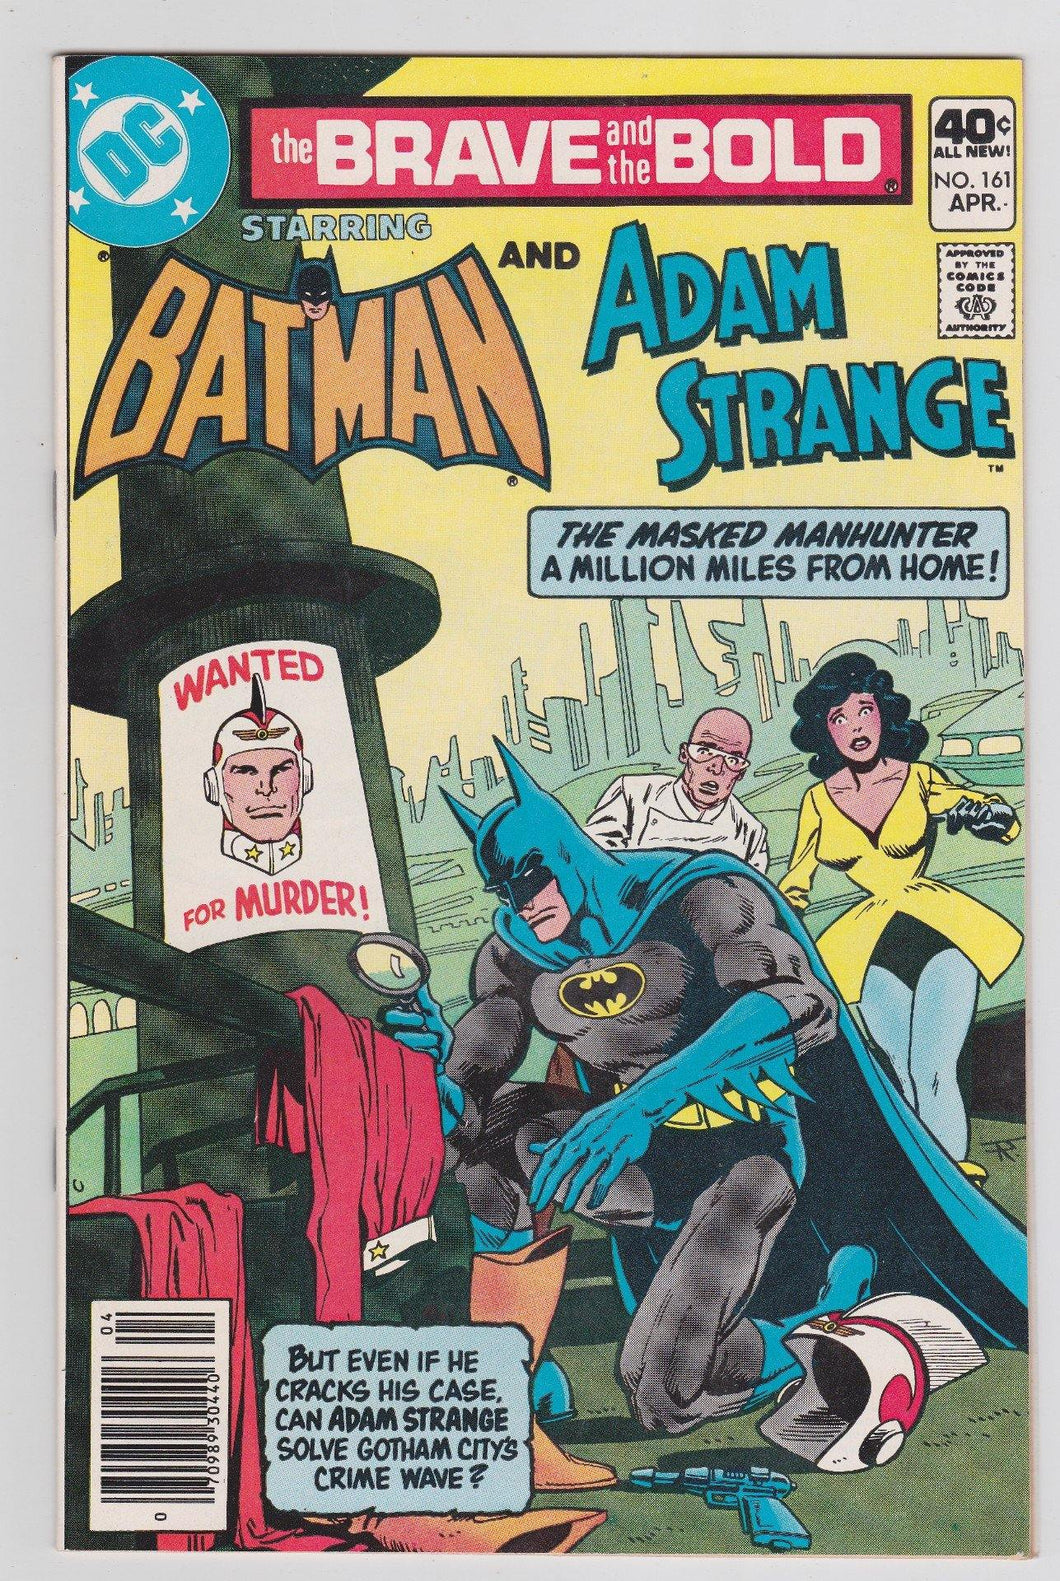 The Brave and the Bold 161 Batman and Adam Strange DC Comics April 1980 - TulipStuff